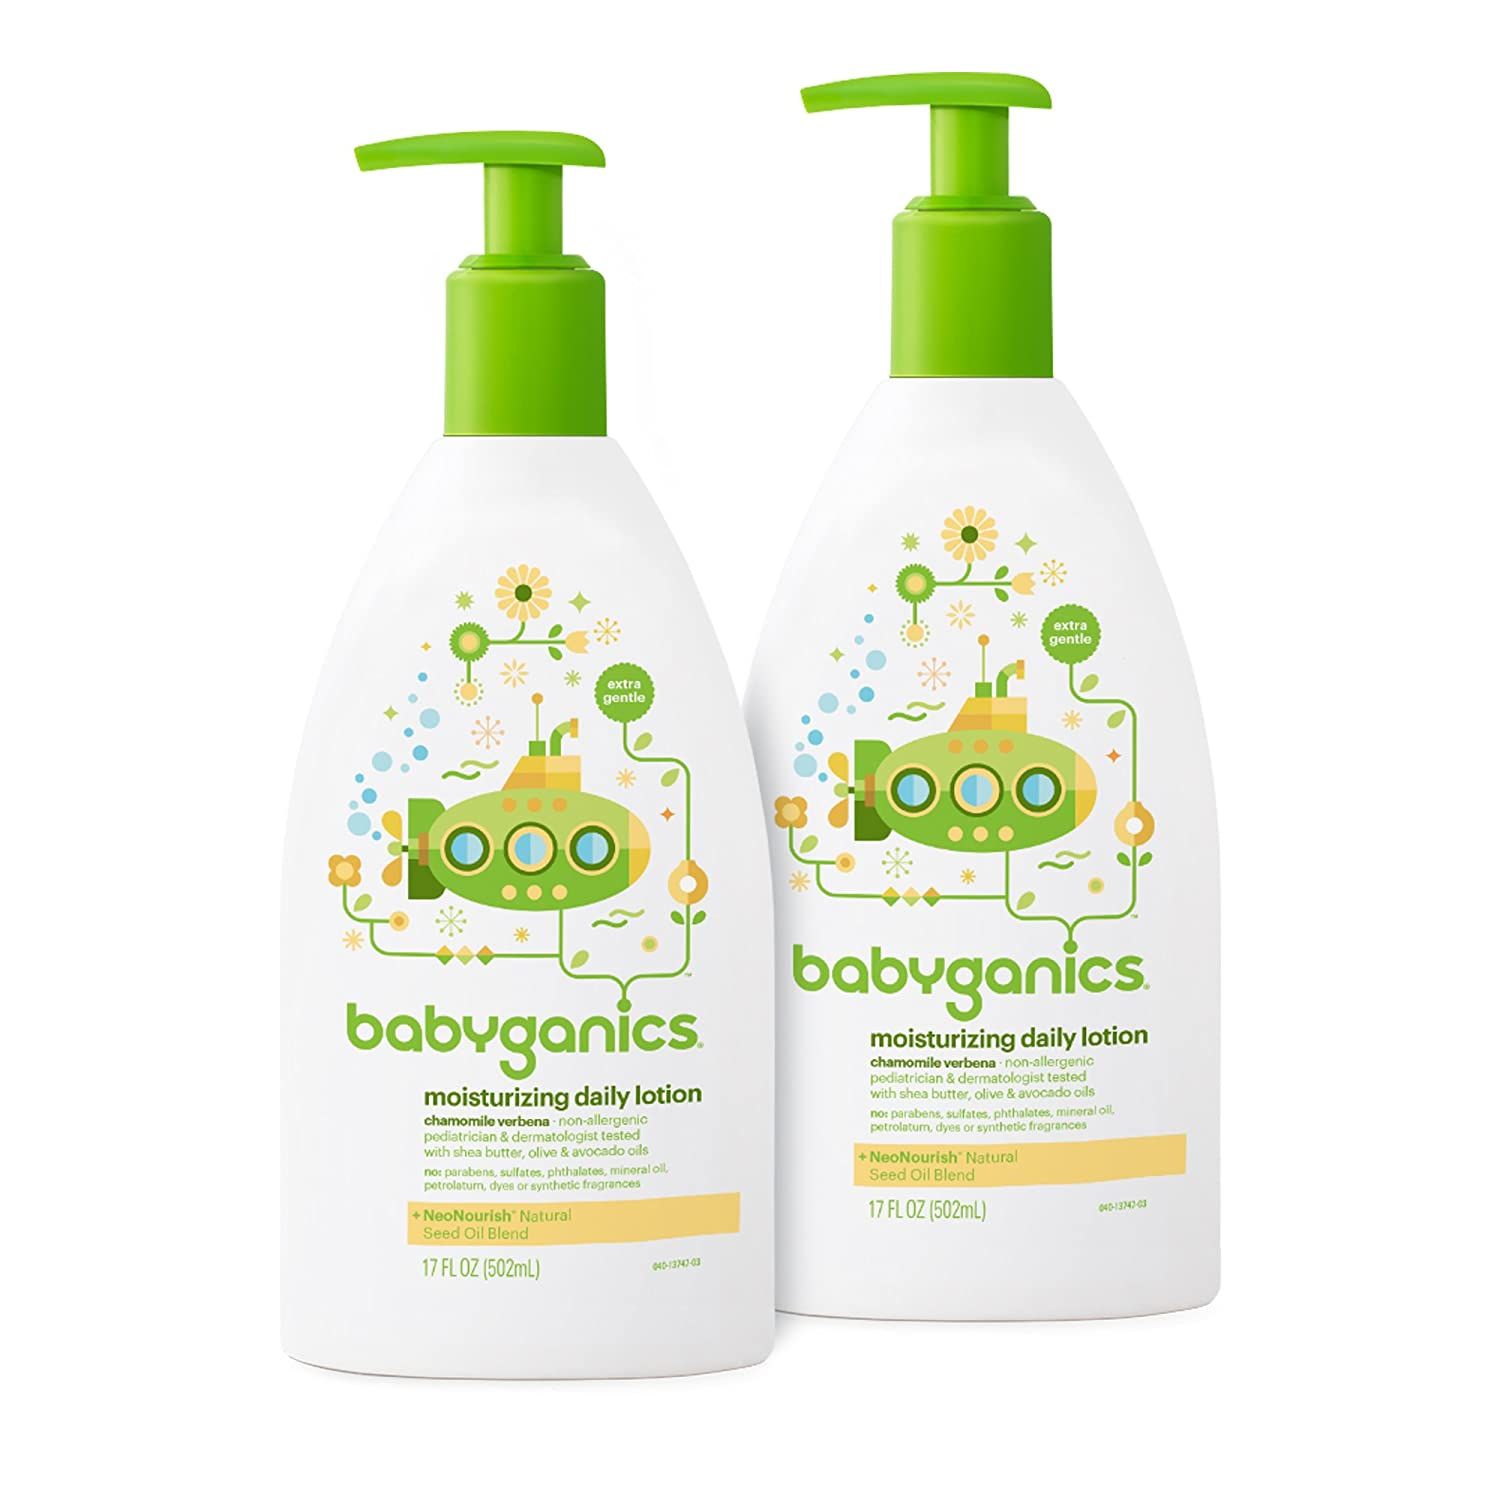 Babyganics Moisturizing Daily Lotion, Fragrance Free, 17-Ounce Pump Bottle (Pack of 2)